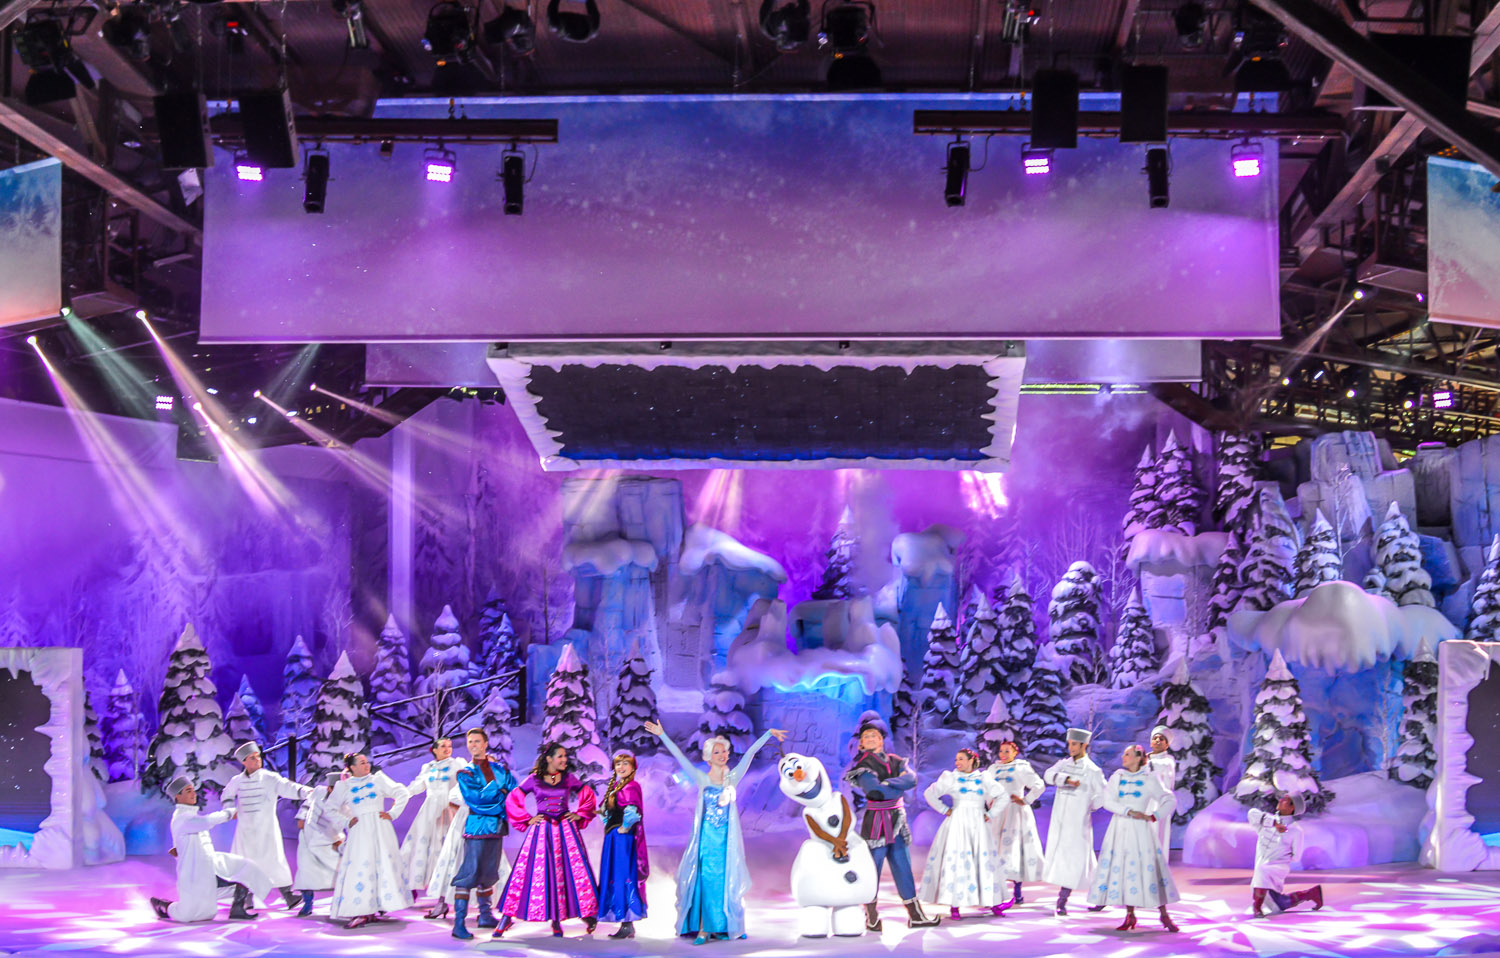 disneyland_paris_frozen_sing_along16